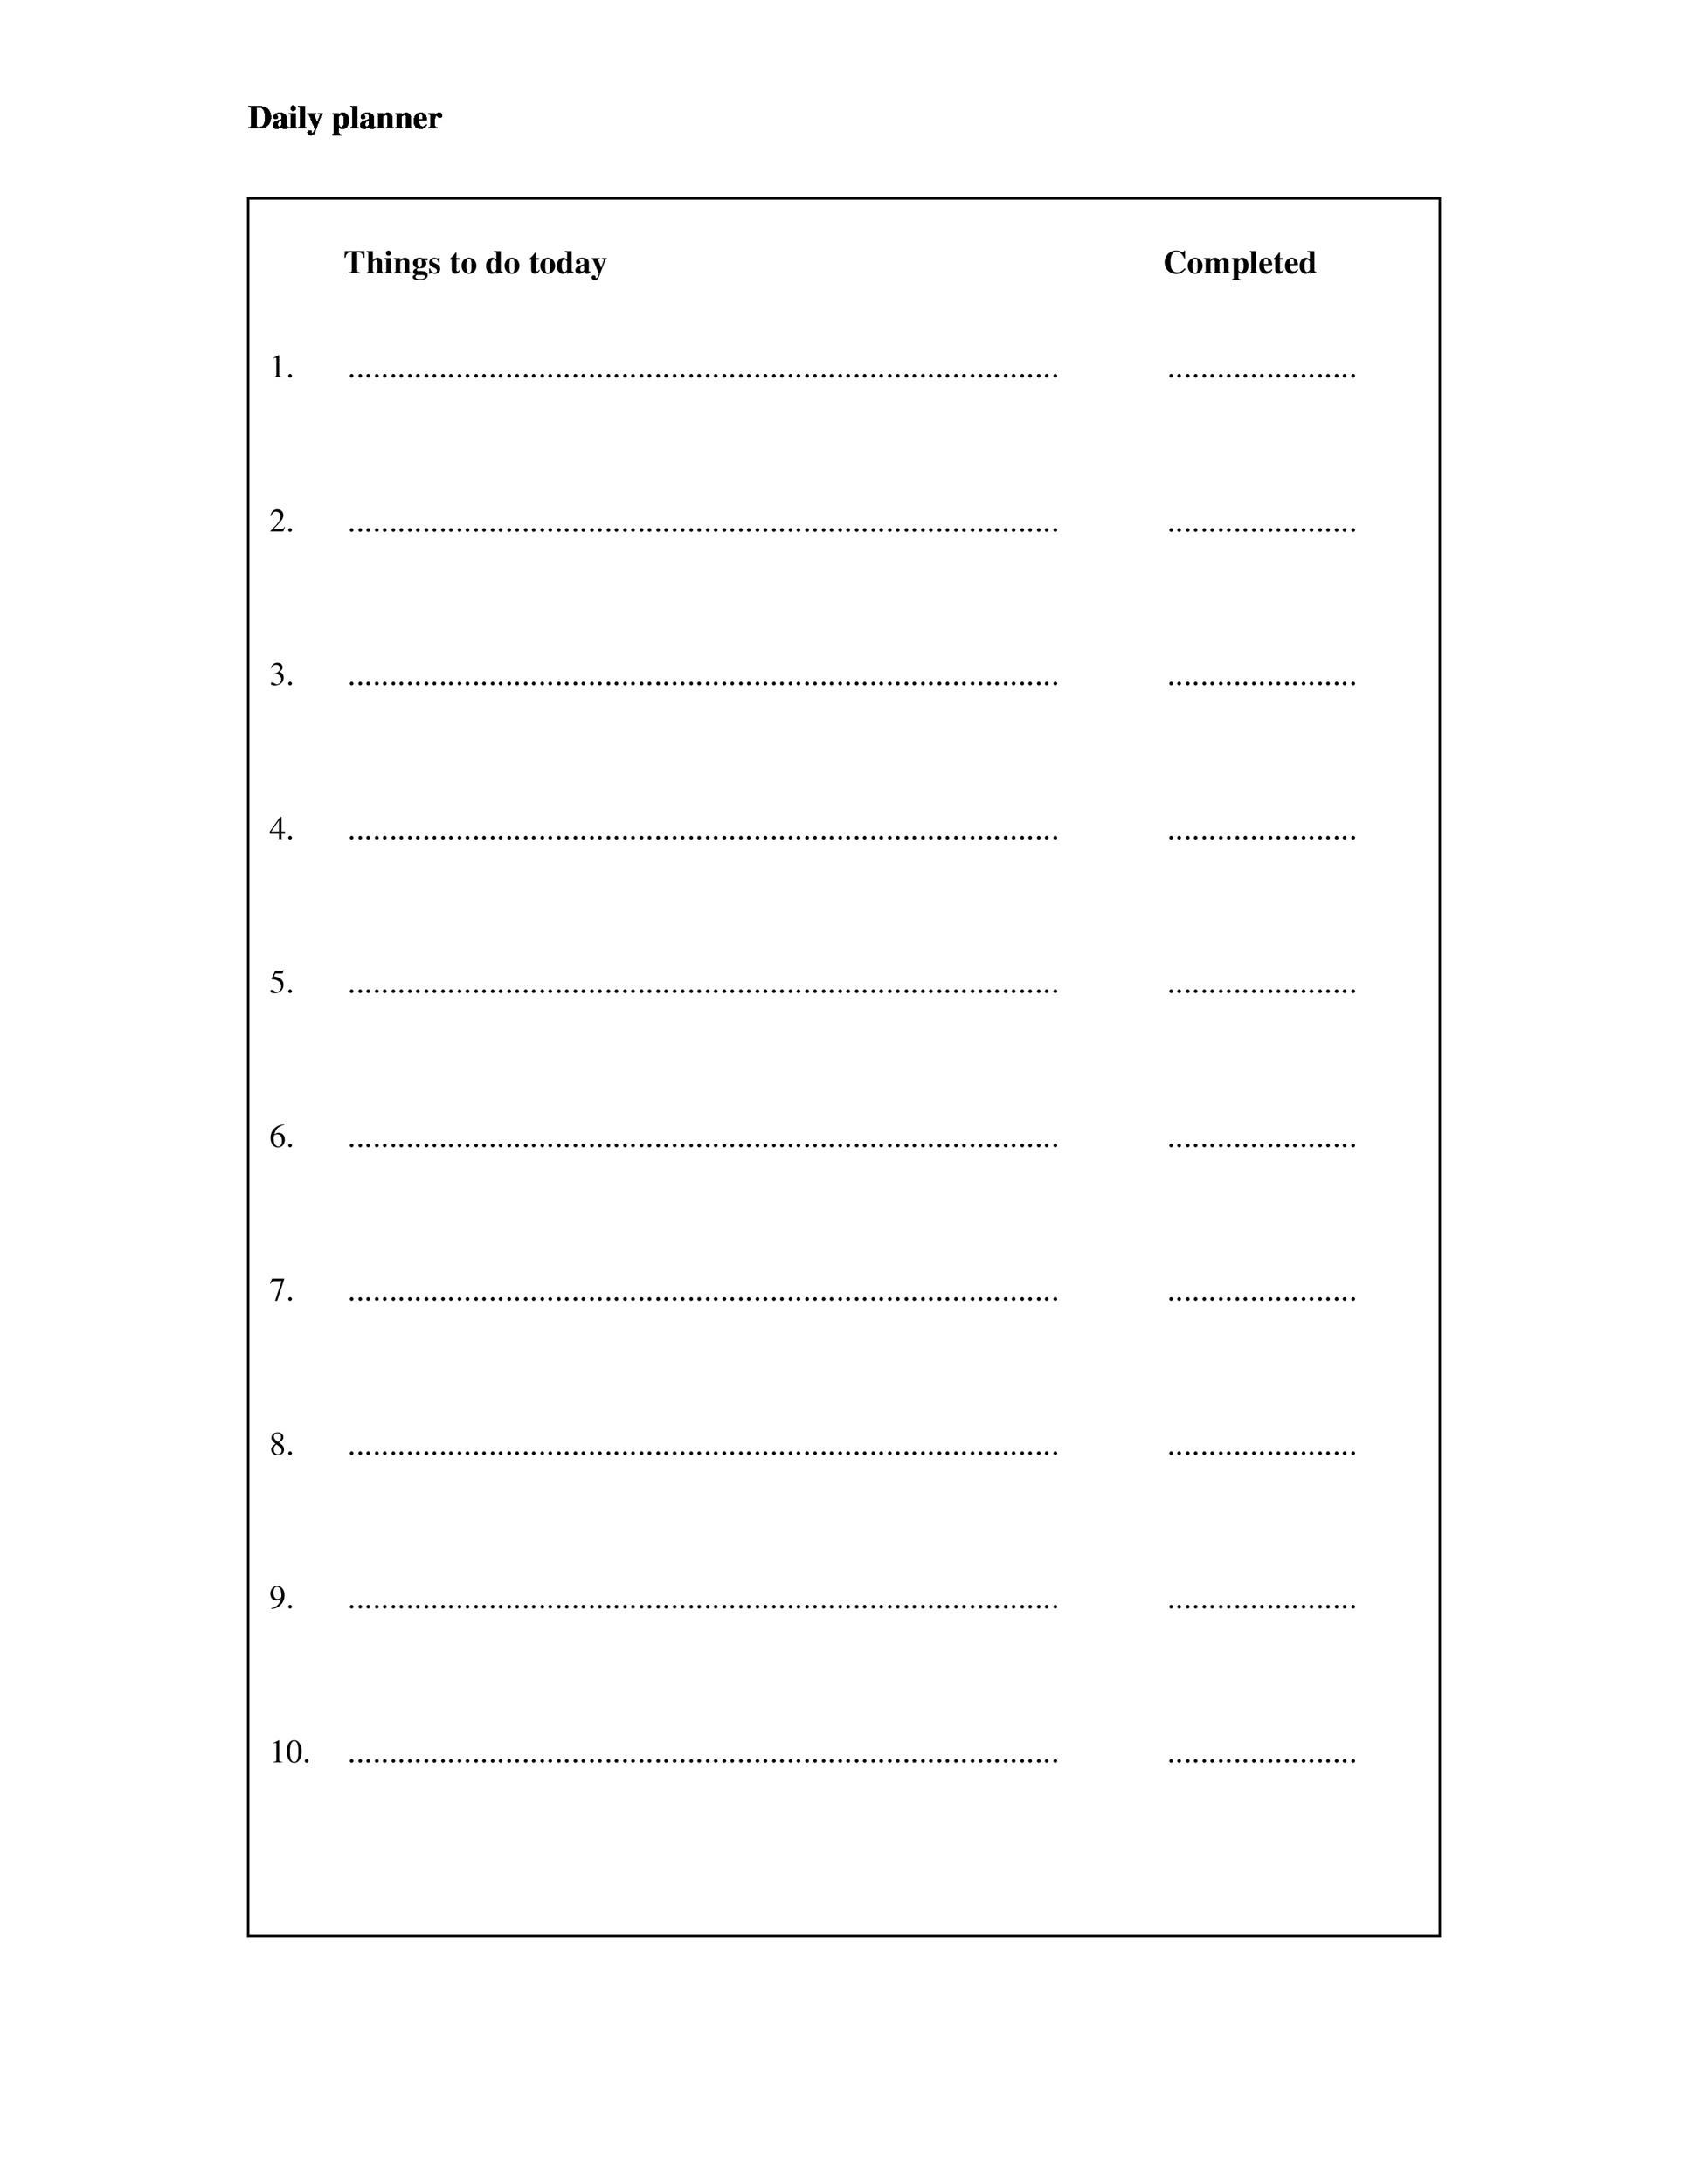 Free daily planner template 06